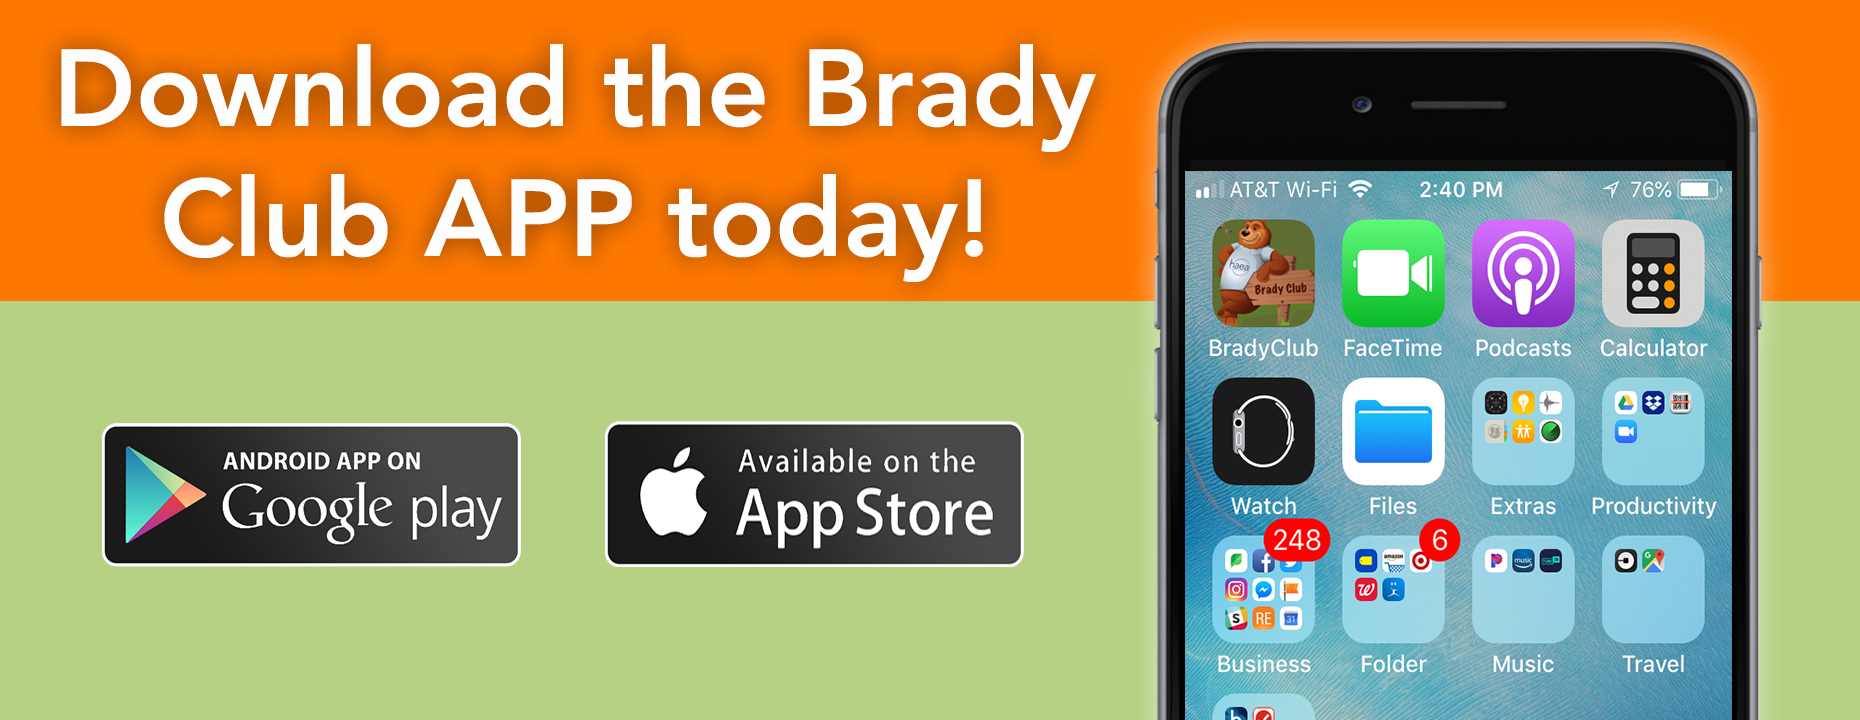 Download thew Brady Club App to your mobile device